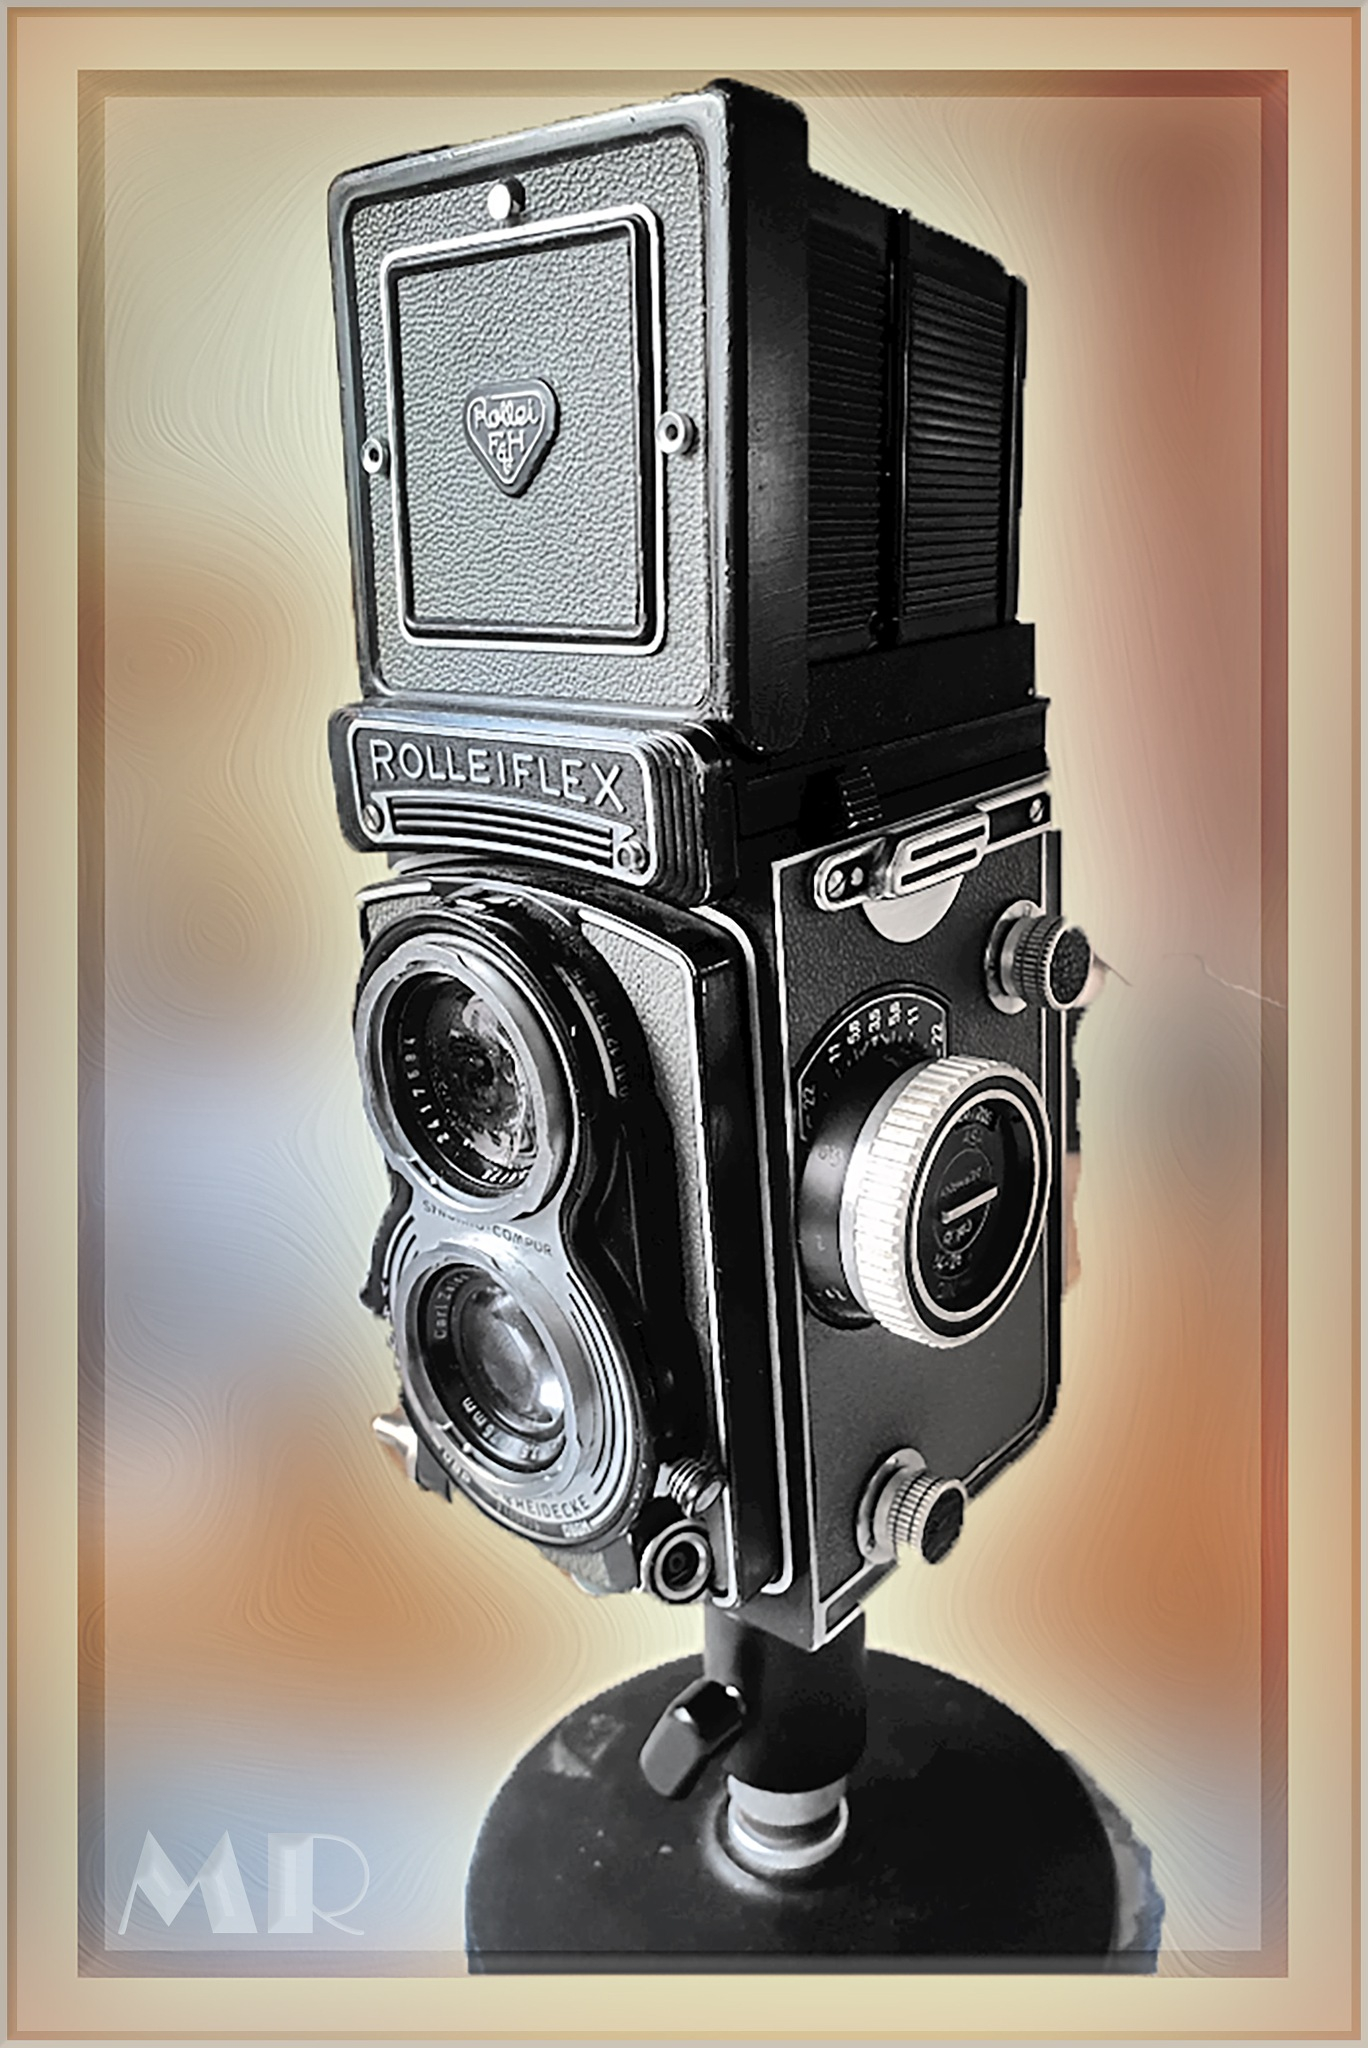 The Rolleiflex T2 by Mikael Rennerhorn